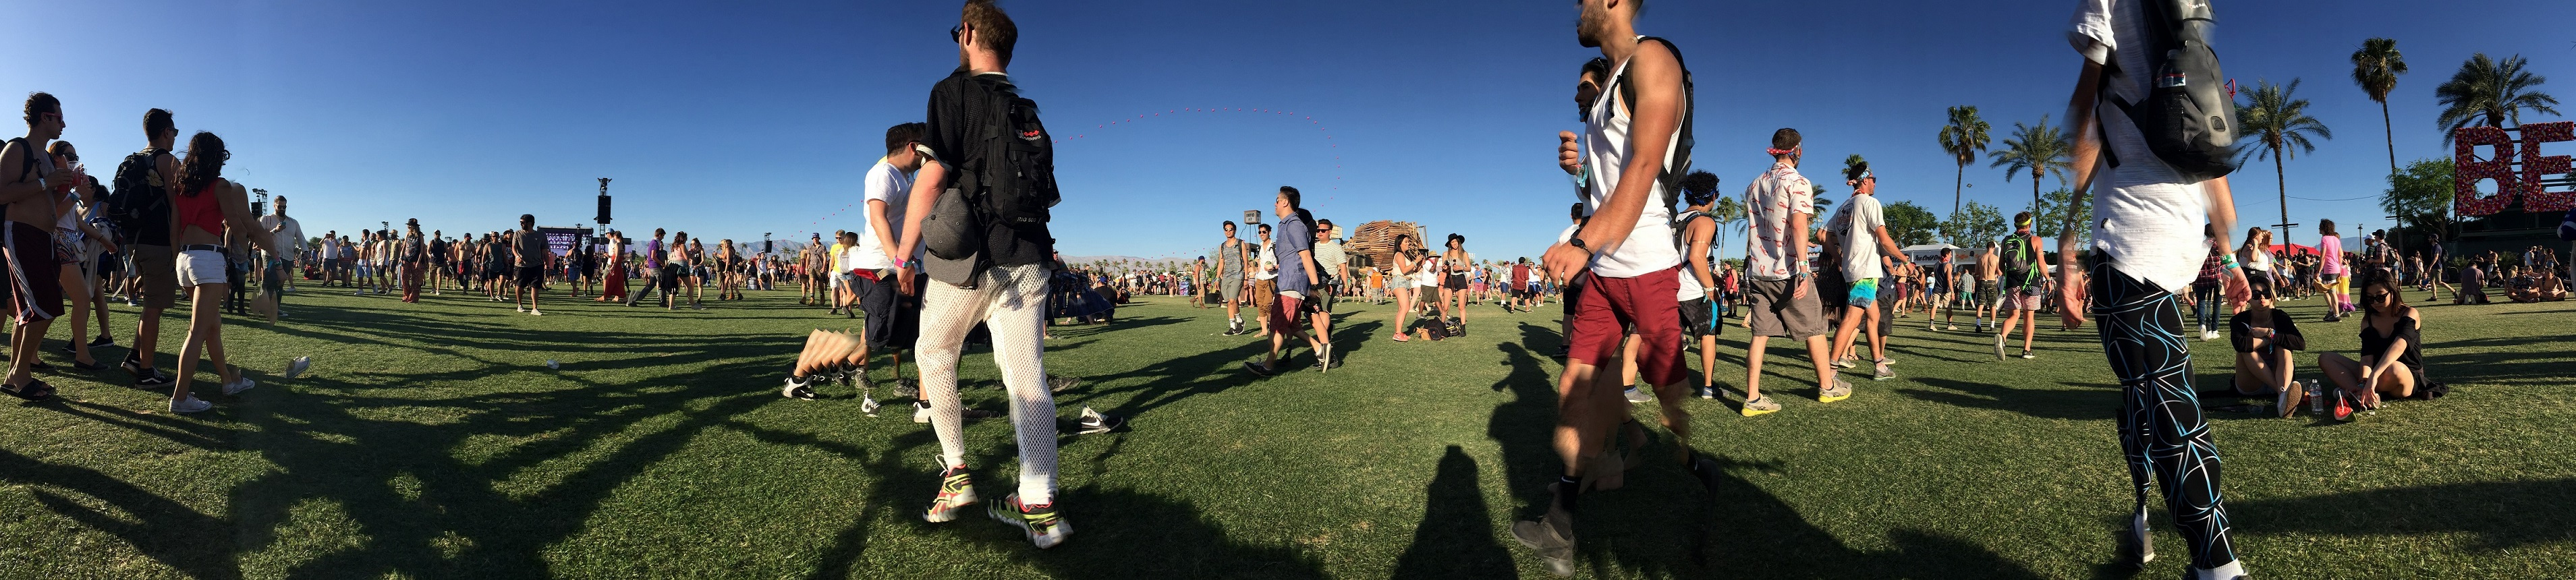 coachella panorama